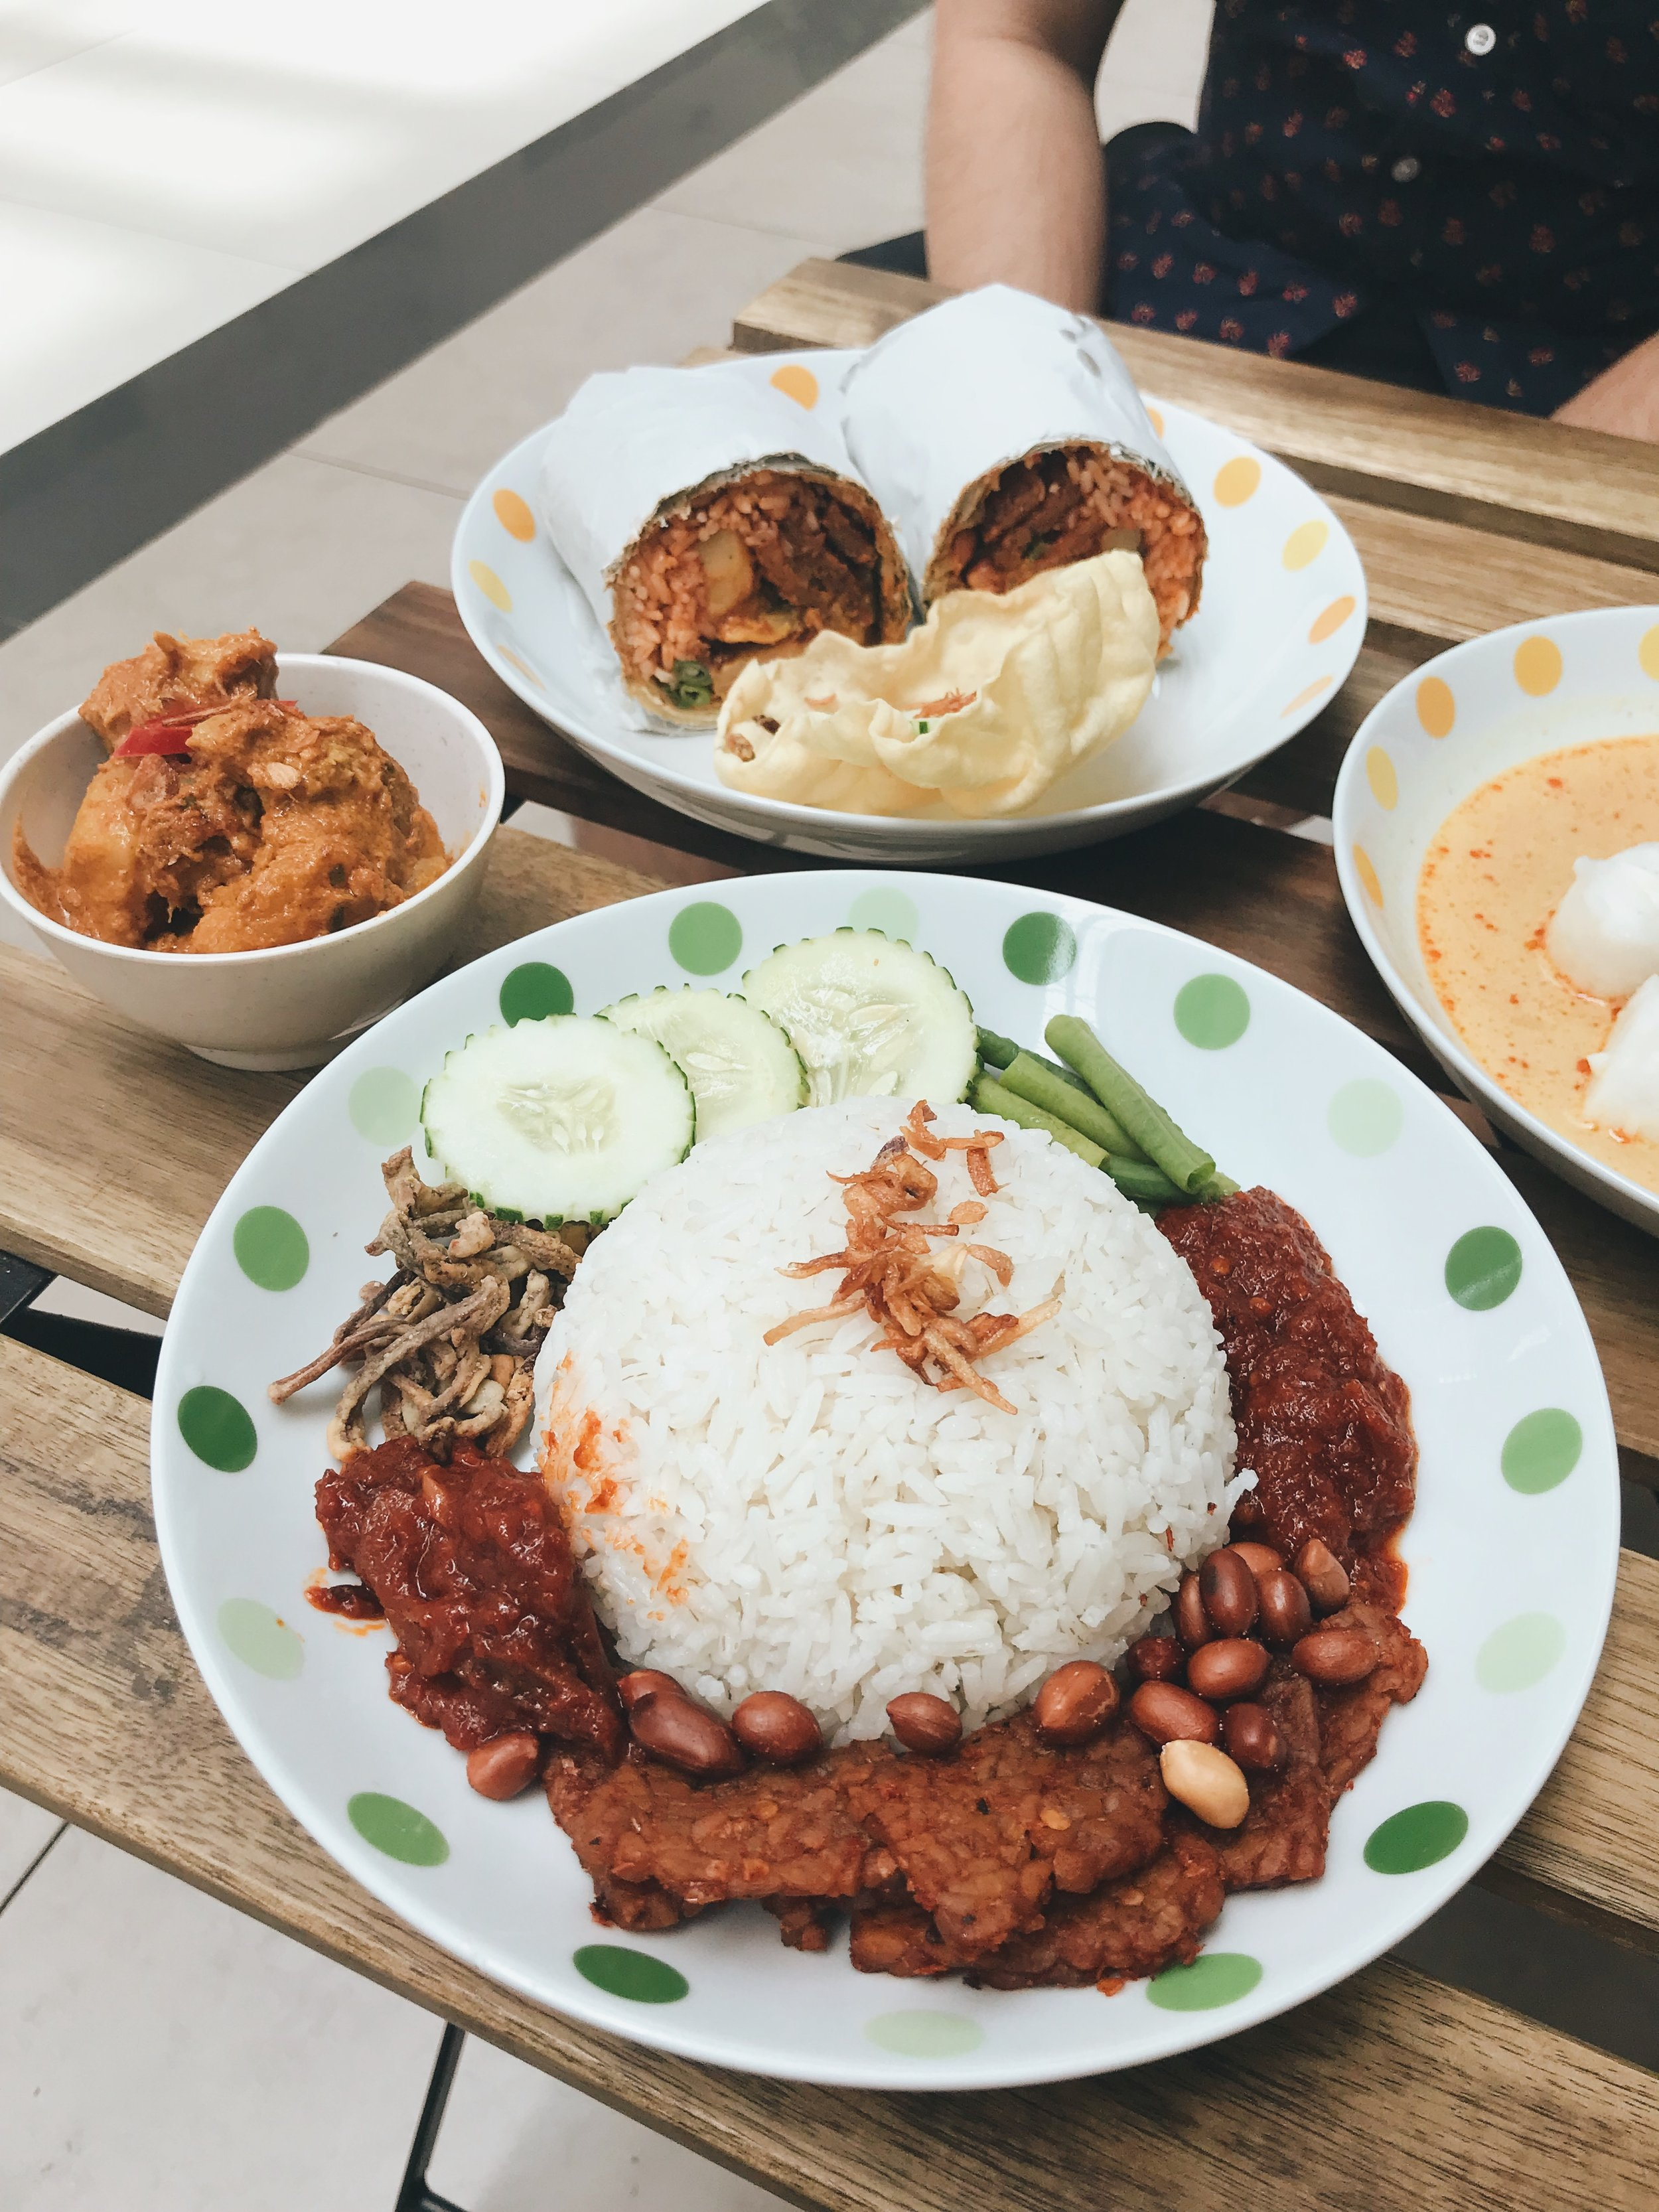 Nasi lemak with lion's mane mushroom rendang (plated or in a burrito). - RM18